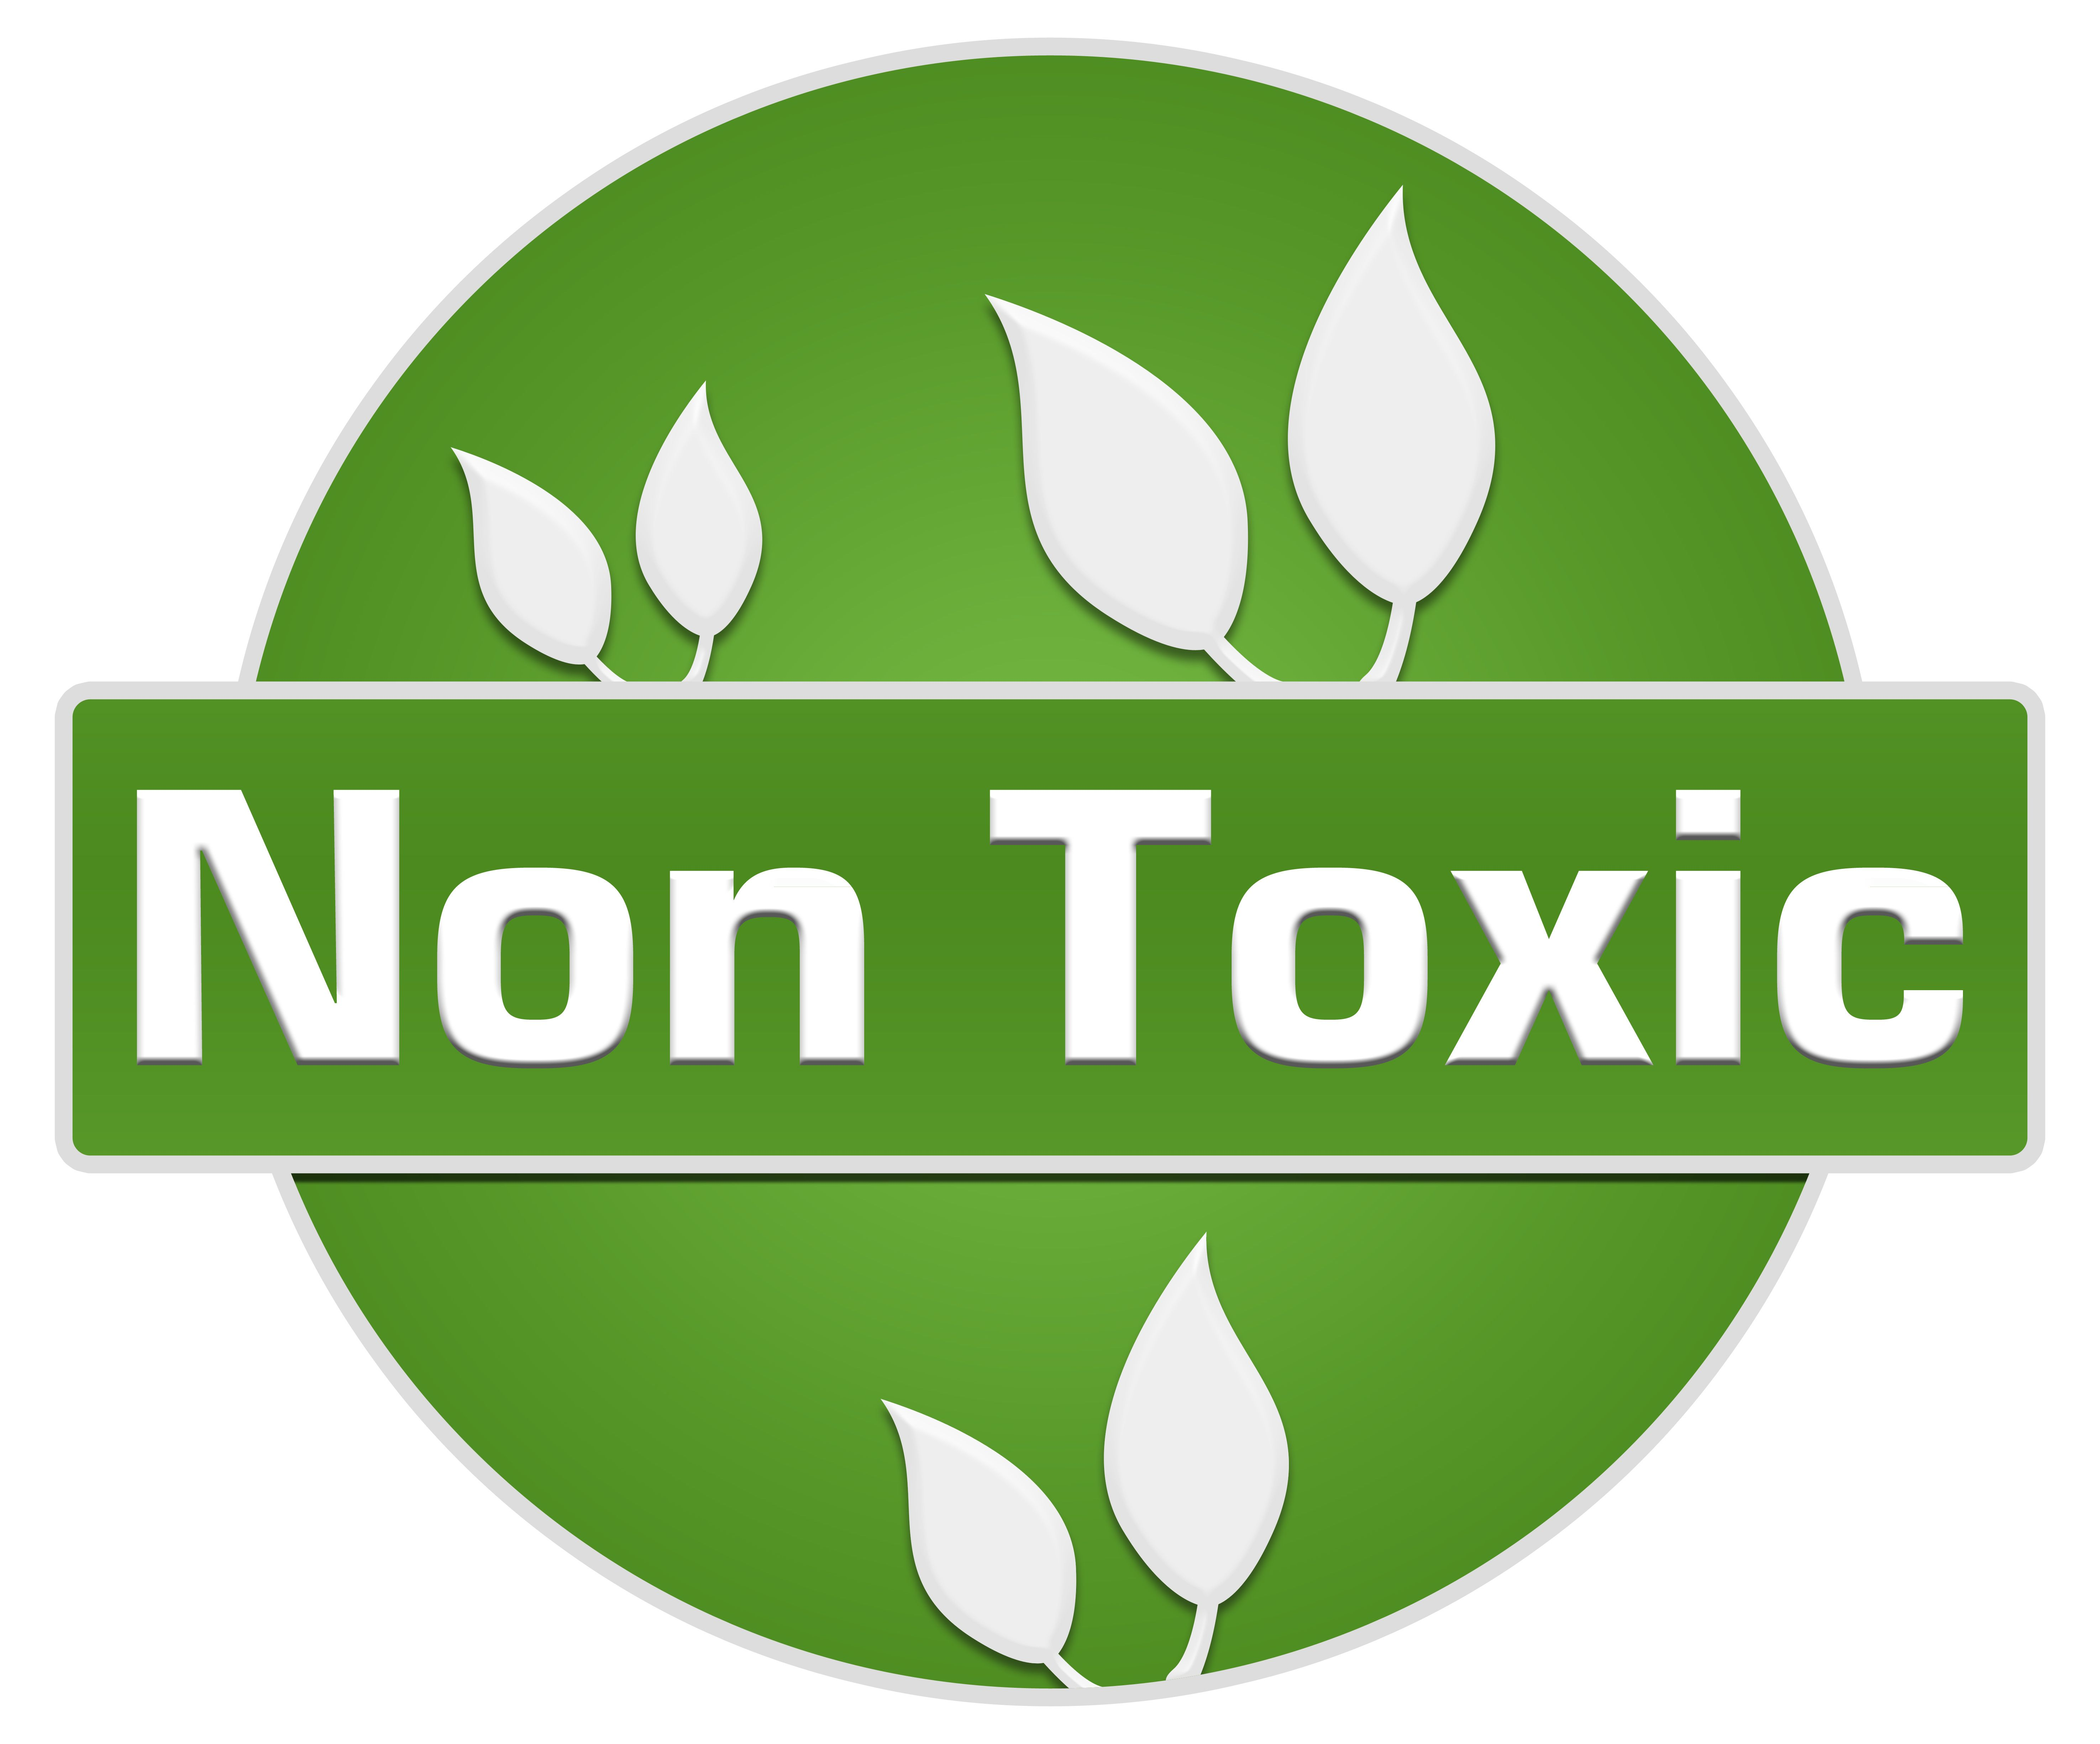 We don't use chemicals on our lawn. Why should we use them